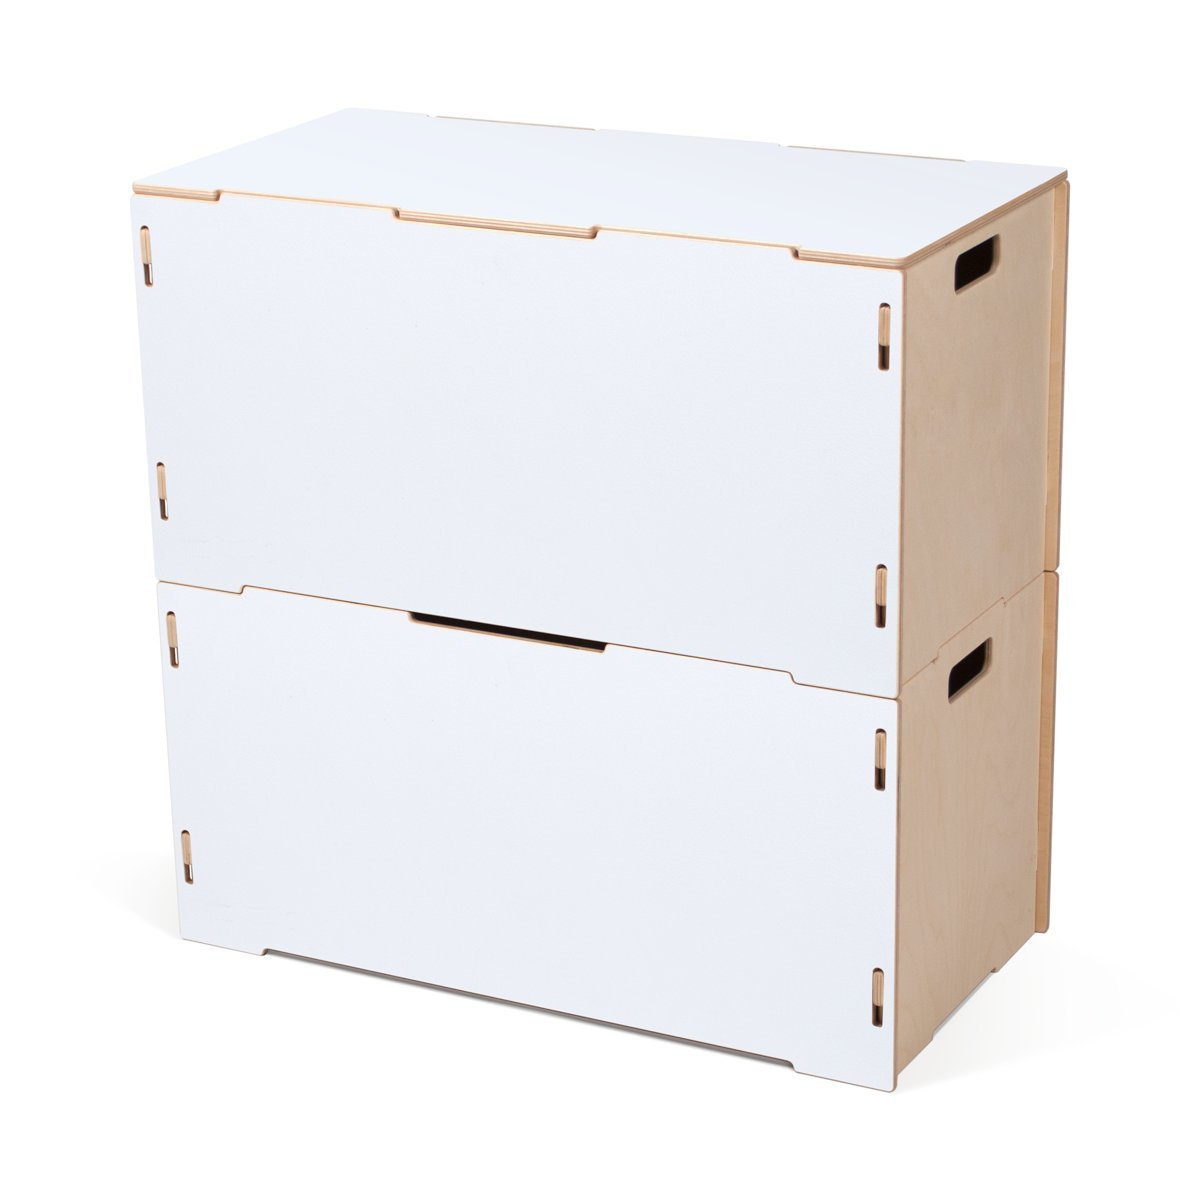 Stacking Crates Wooden Storage Tote Set (Two Totes, One Lid) ホワイト CR_TT2-WHT B01N24KN1V Wooden Storage Tote Set (Two Totes, One Lid)|White Painted Baltic Birch White Painted Baltic Birch Wooden Storage Tote Set (Two Totes, One Lid)